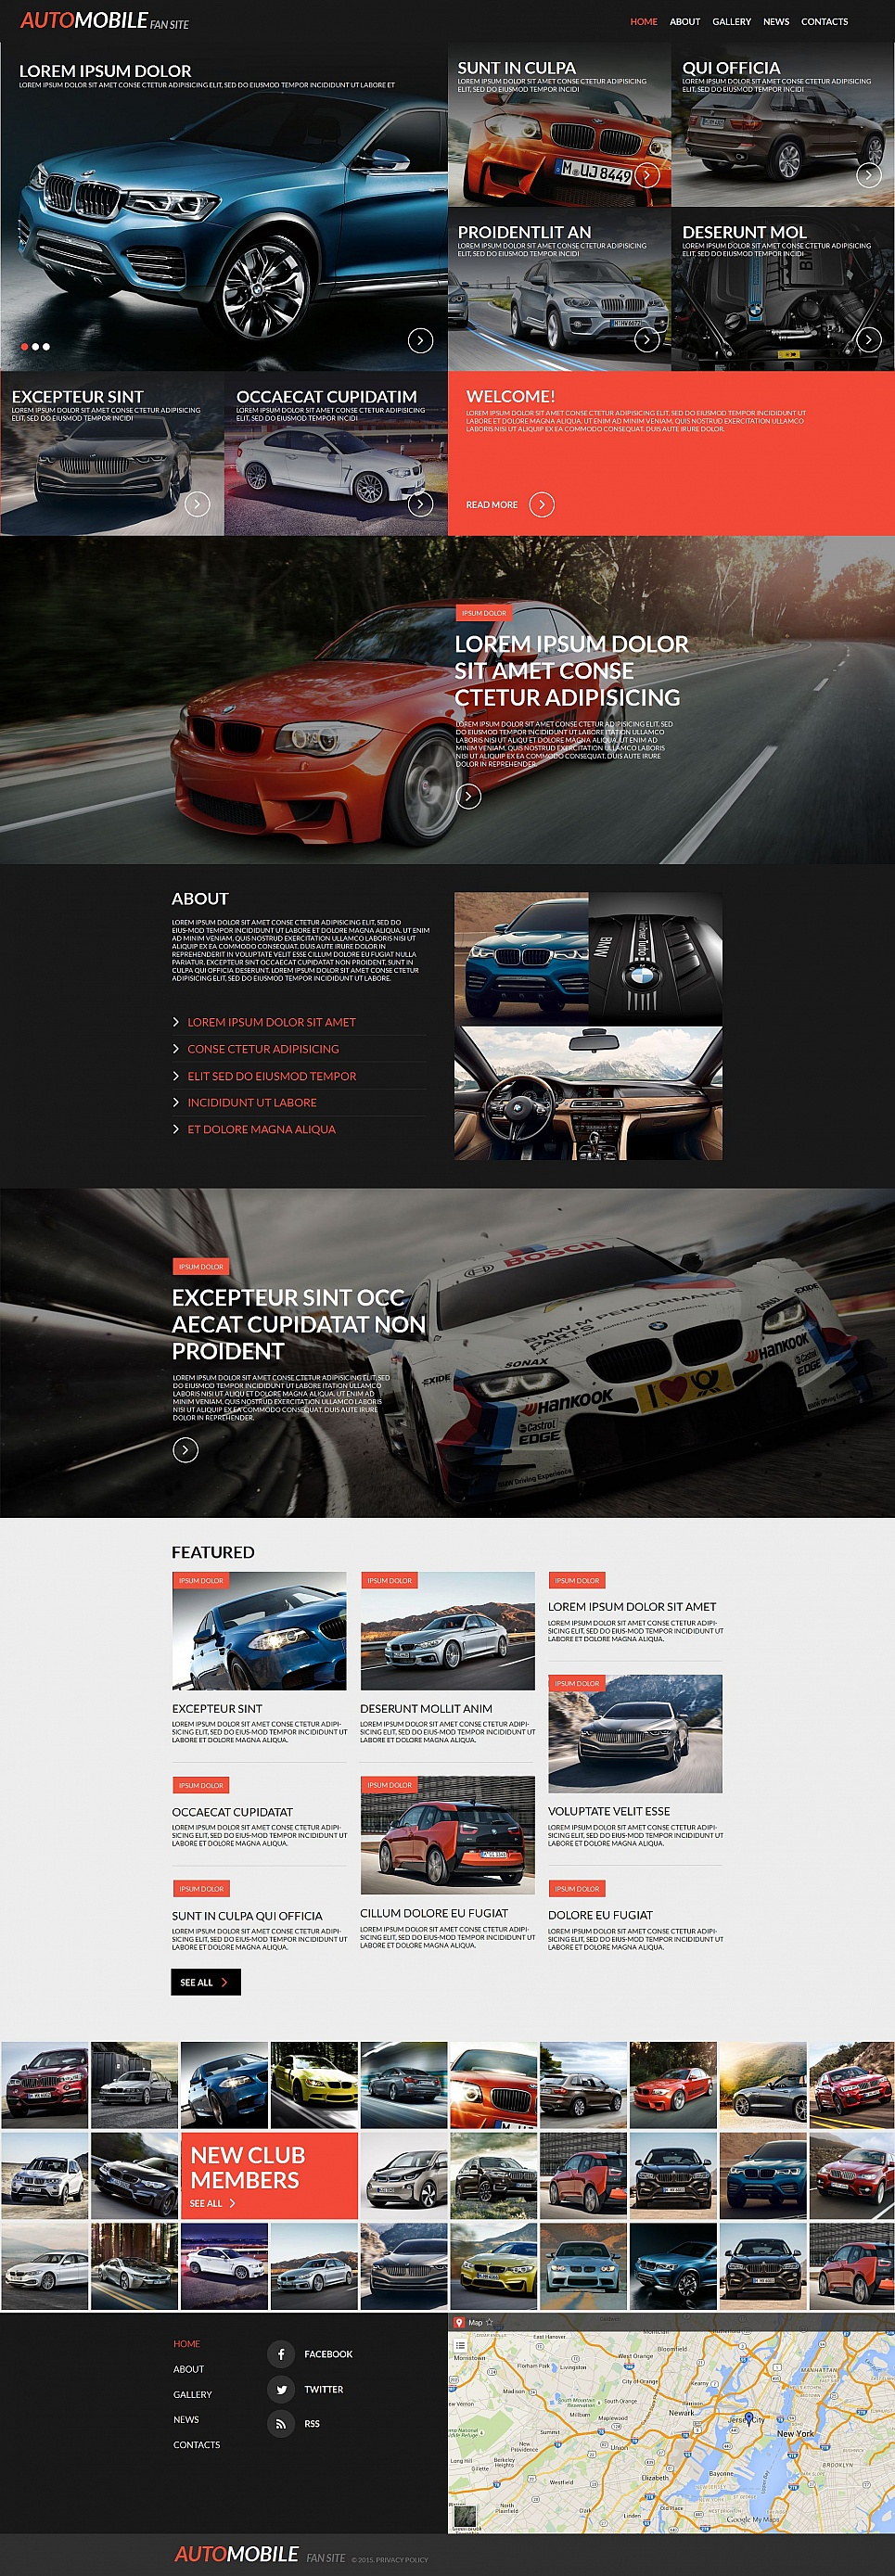 Cars MotoCMS HTML Template #55324 - image